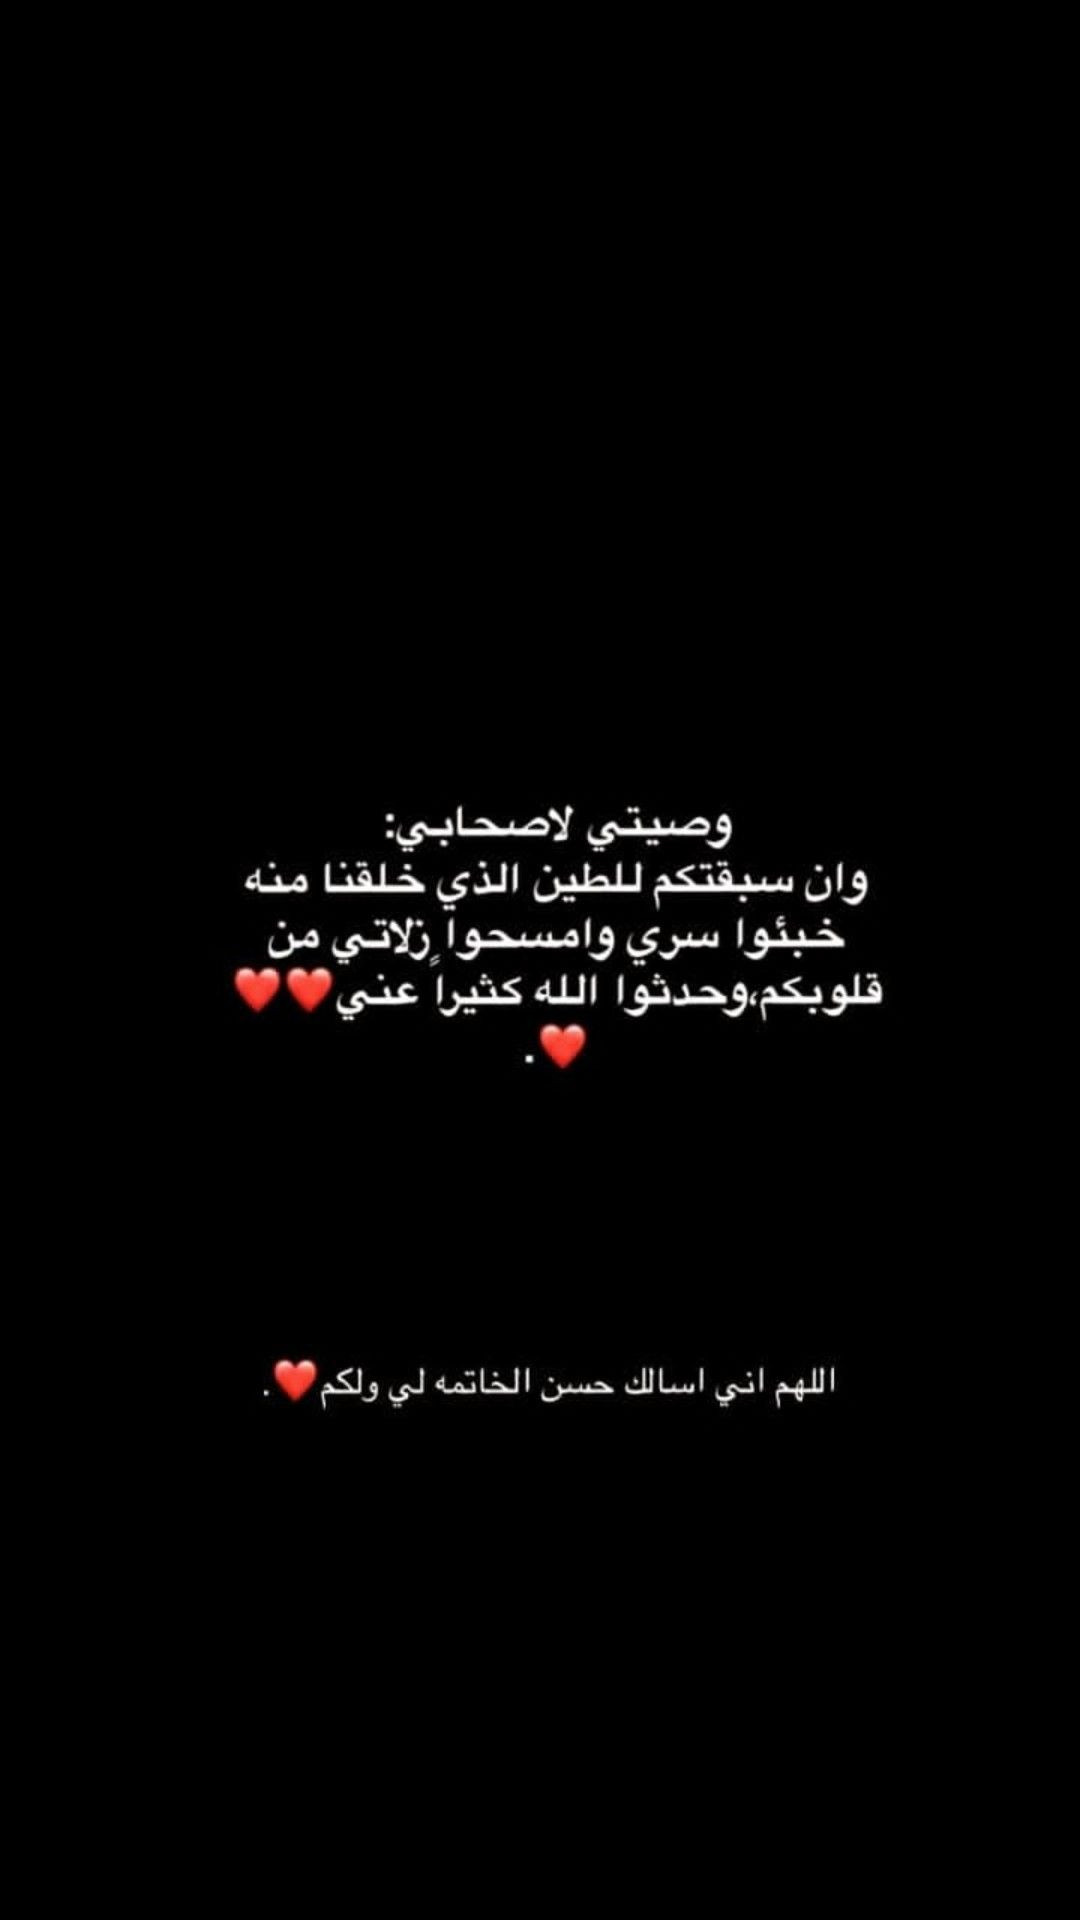 Pin By صمتي حكايہ On ولي أمل برب ي لا يخيب Arabic Quotes Arabic Love Quotes Lyric Quotes